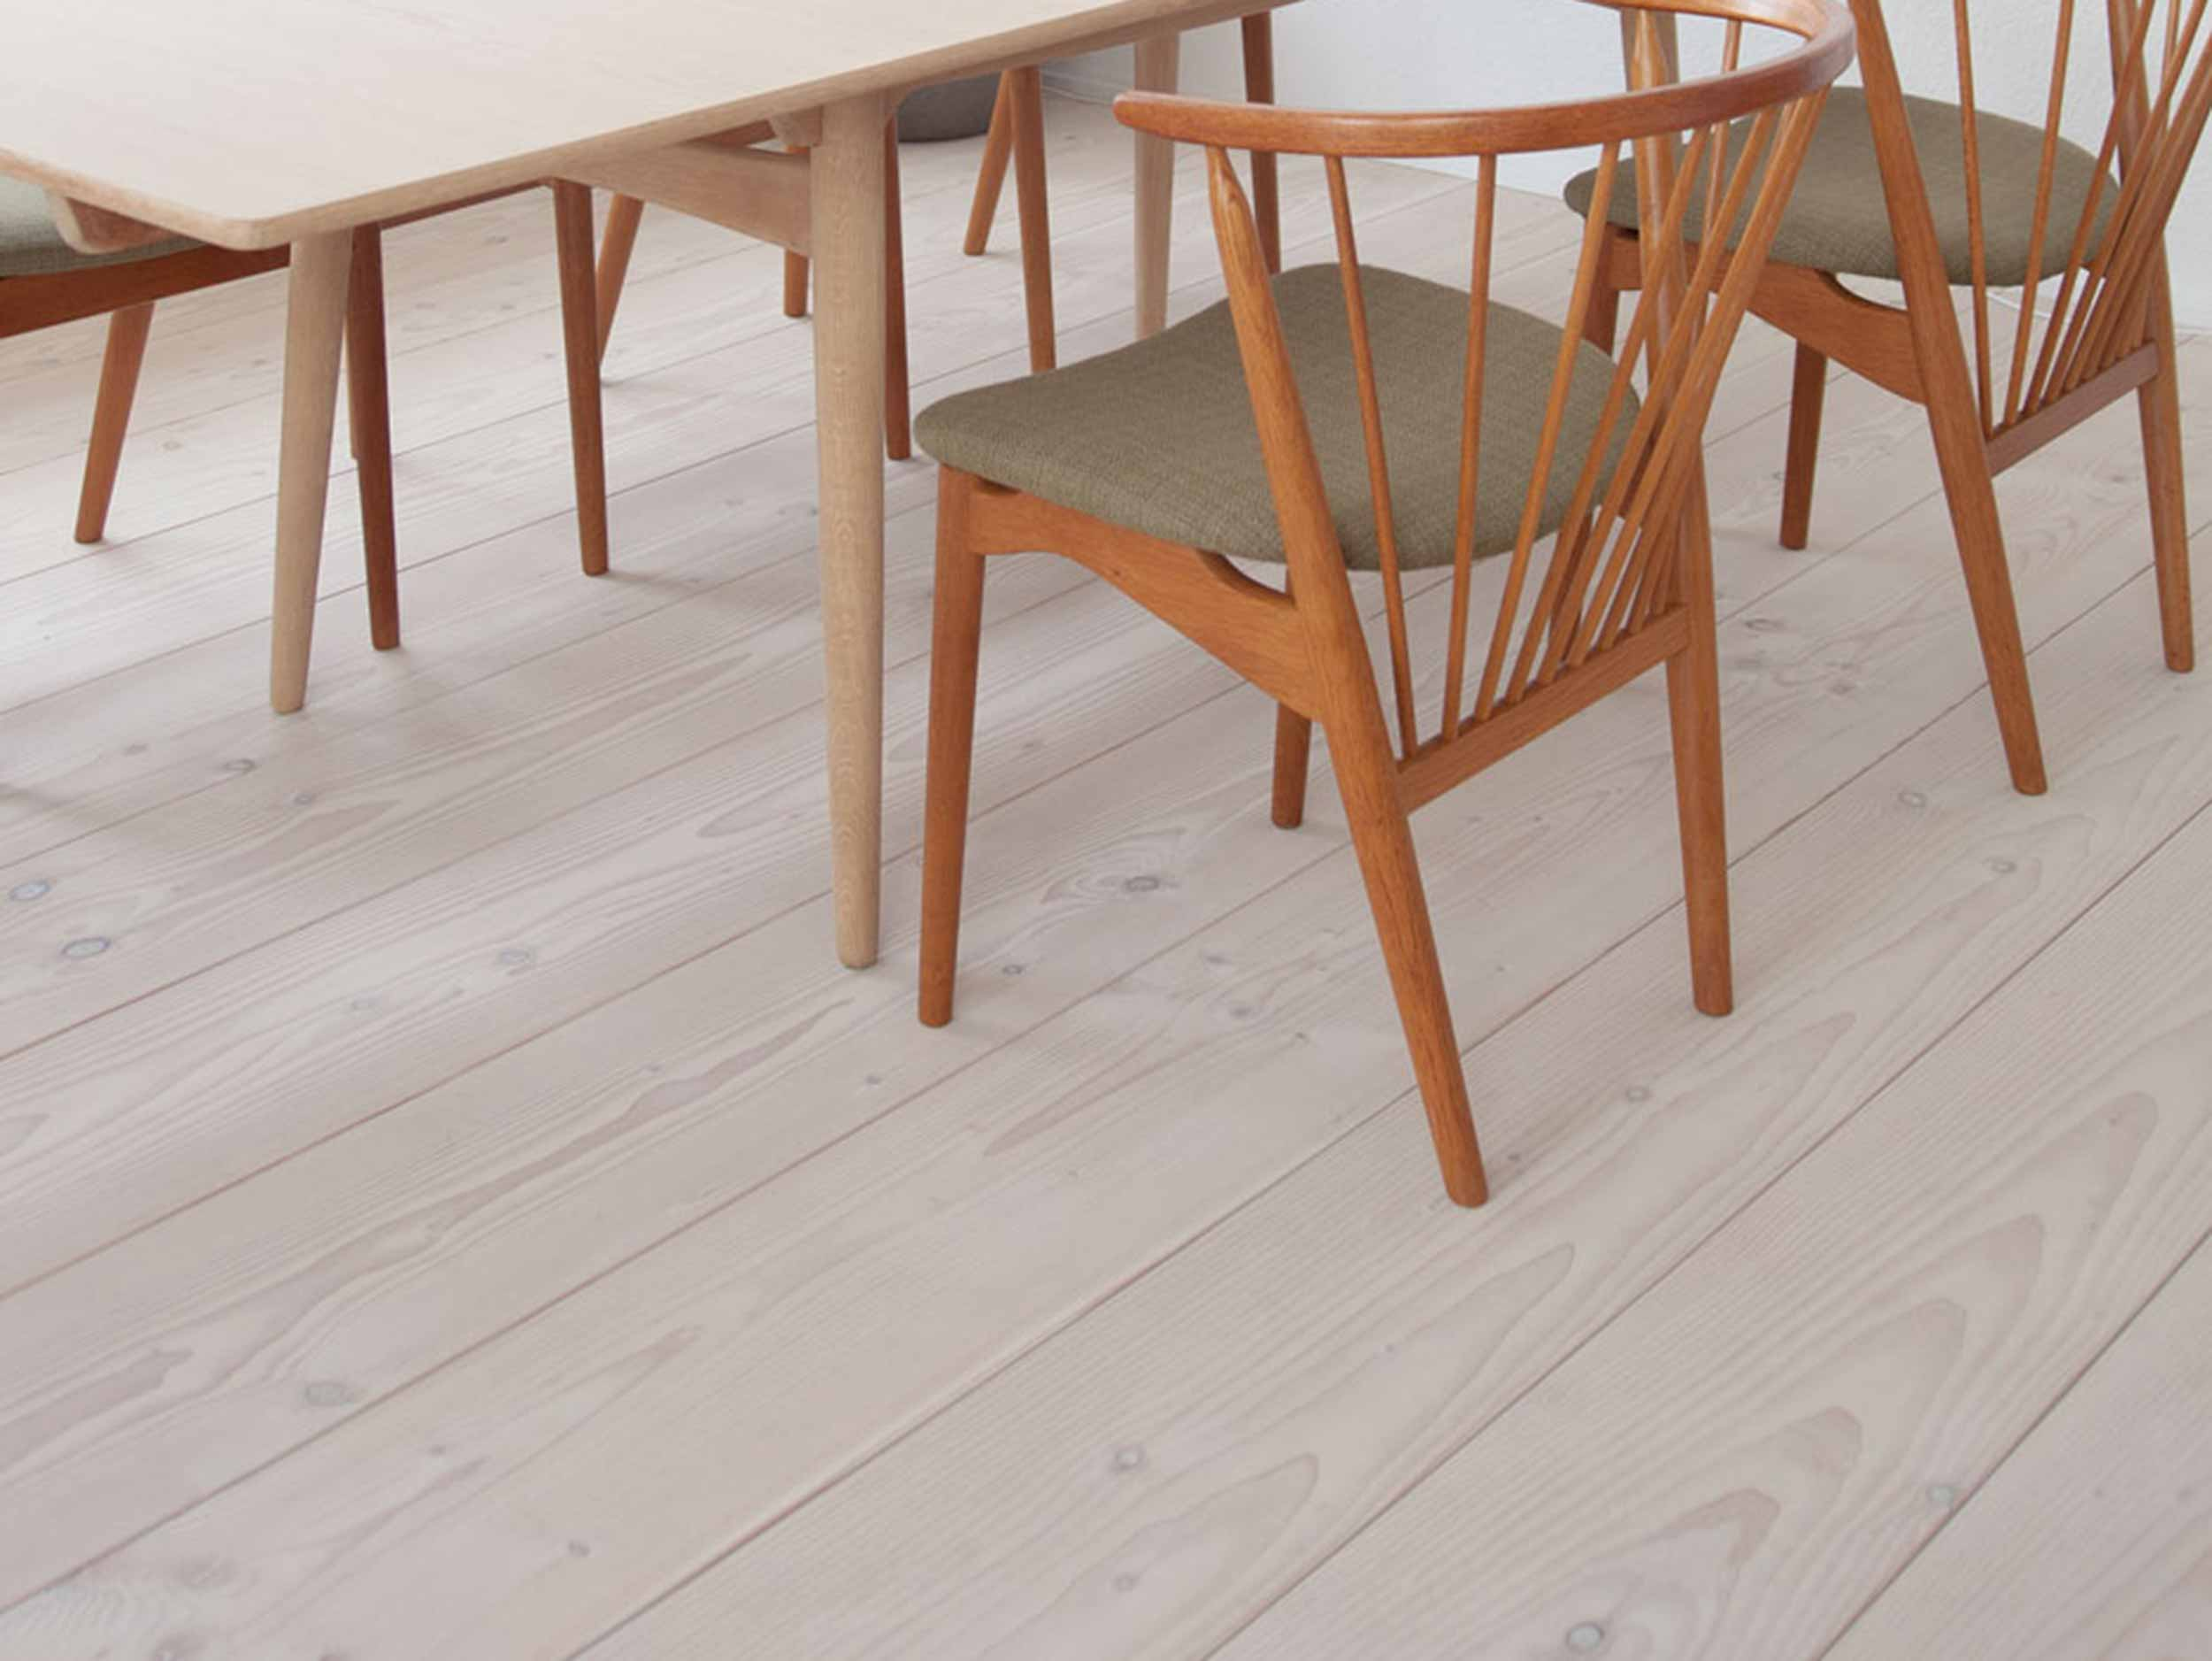 Douglas fir plank flooring - white washed with white Lye & white Soap